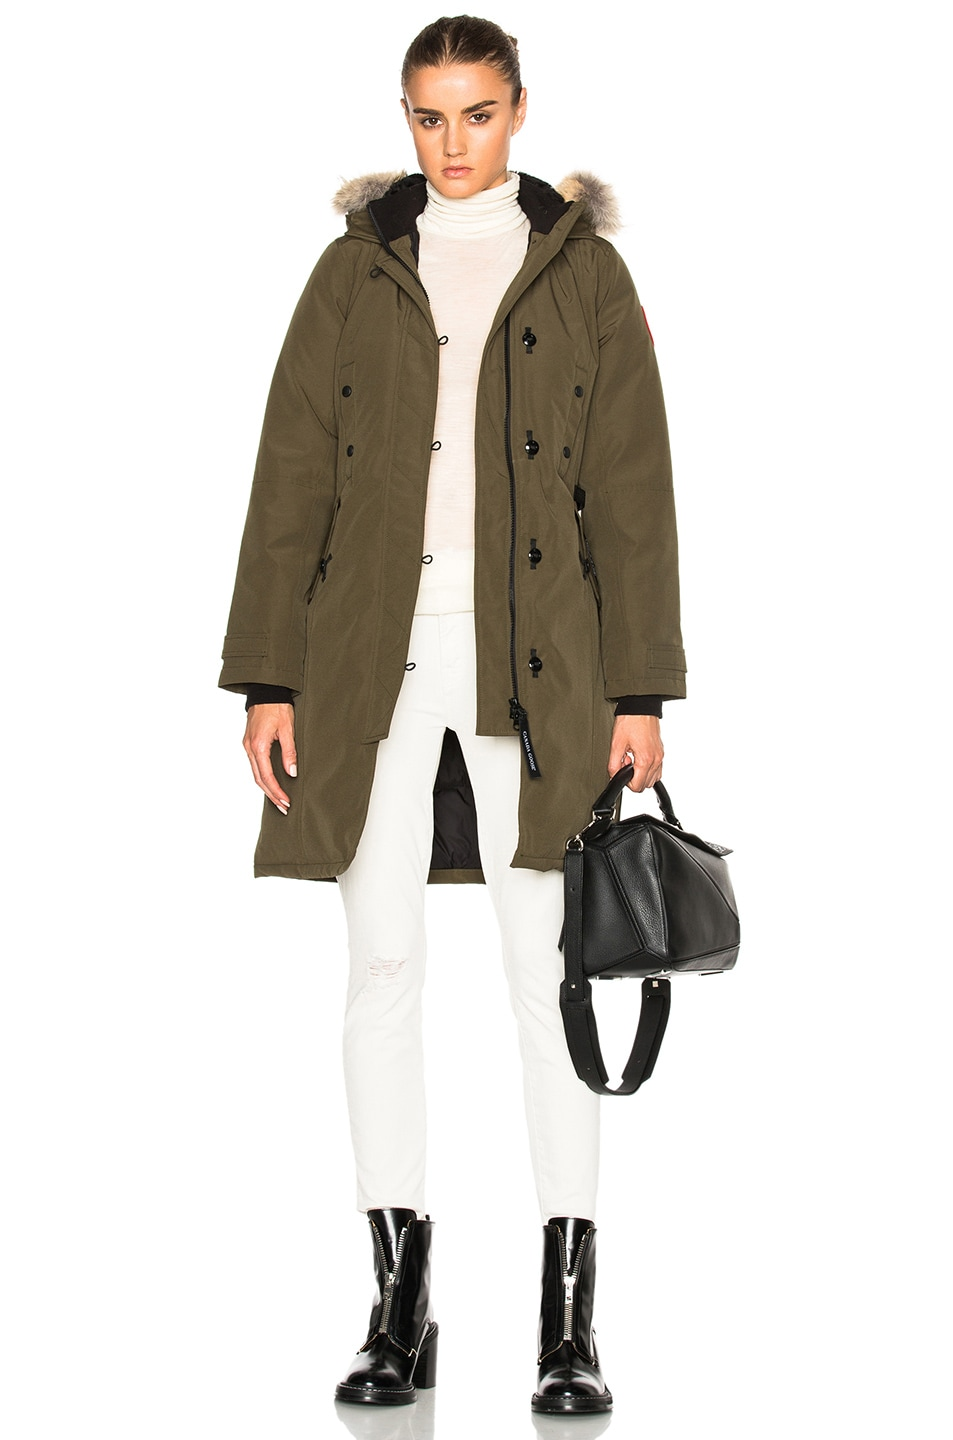 Image 1 of Canada Goose Kensington Parka With Coyote Fur in Military Green 1ad0e7331